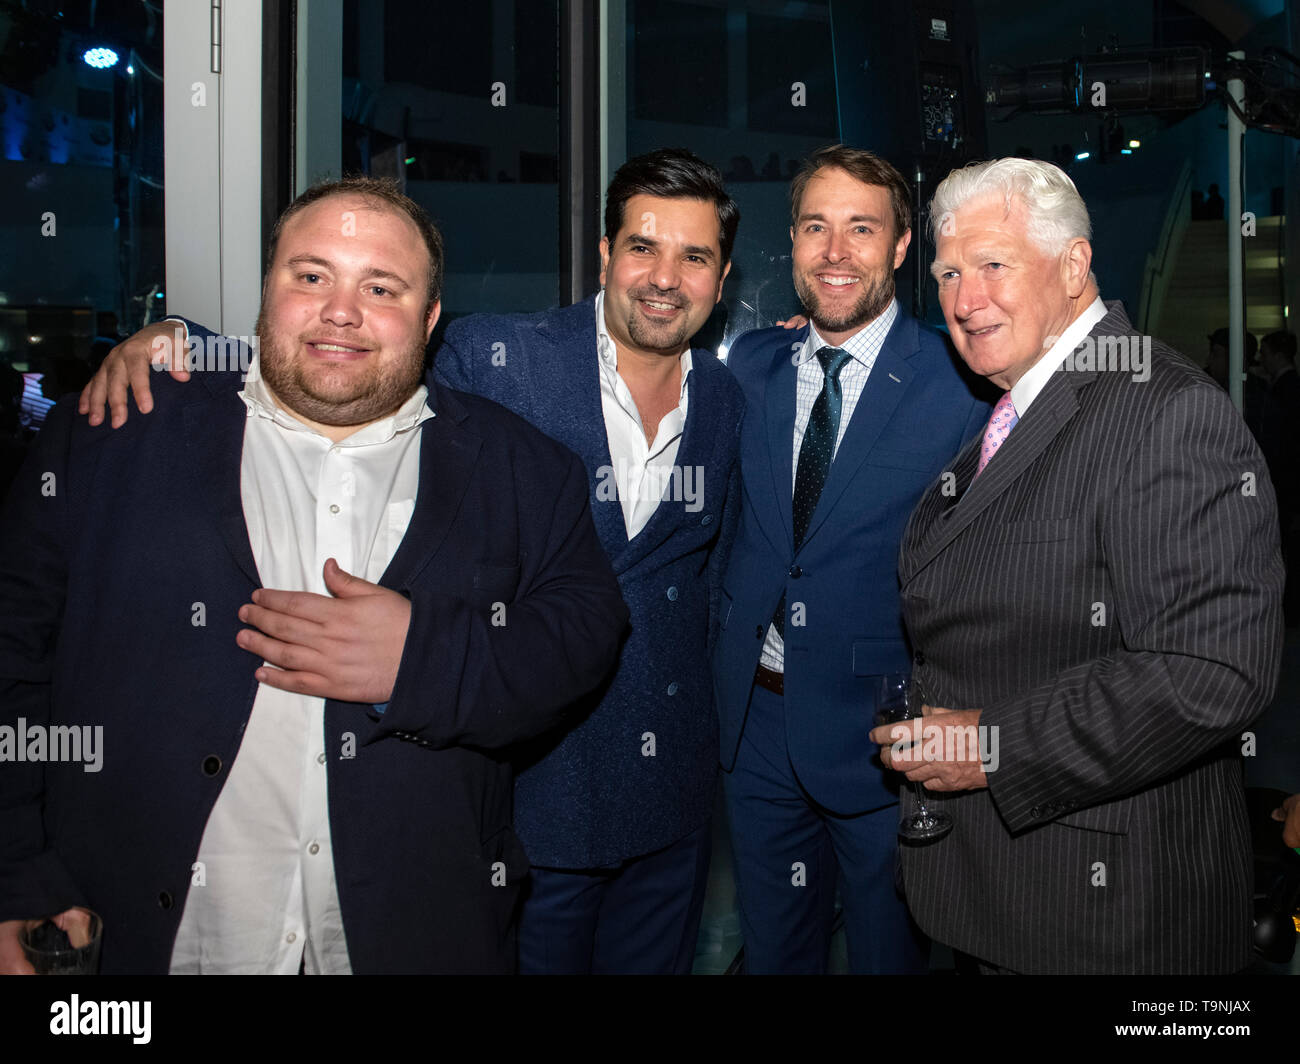 Washington, DC. 26th Apr, 2019. From left to right: Washington Post reporter Josh Dawsey, Qatar's Ambassador to the United States, Sheikh Meshal Bin Hamad Al-Thani, an unknown man, and former Congressman Jim Moran pose for a photo during Qatar's White House Correspondents Association pre-party in Washington, DC, on April 26, 2019. Credit: Ron Sachs/CNP | usage worldwide Credit: dpa/Alamy Live News - Stock Image